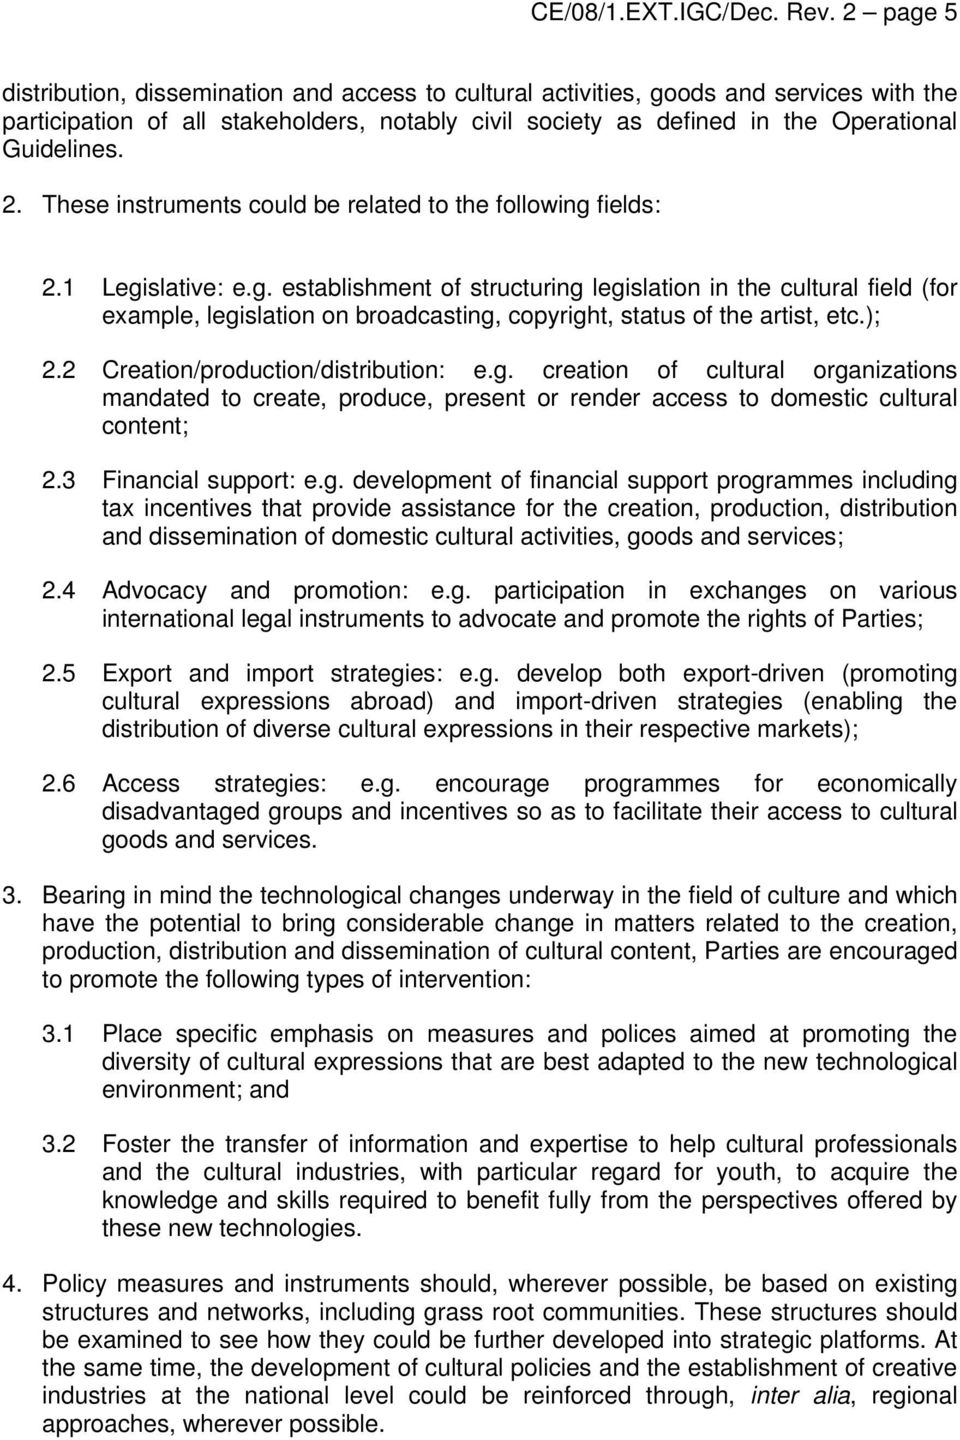 2. These instruments could be related to the following fields: 2.1 Legislative: e.g. establishment of structuring legislation in the cultural field (for example, legislation on broadcasting, copyright, status of the artist, etc.